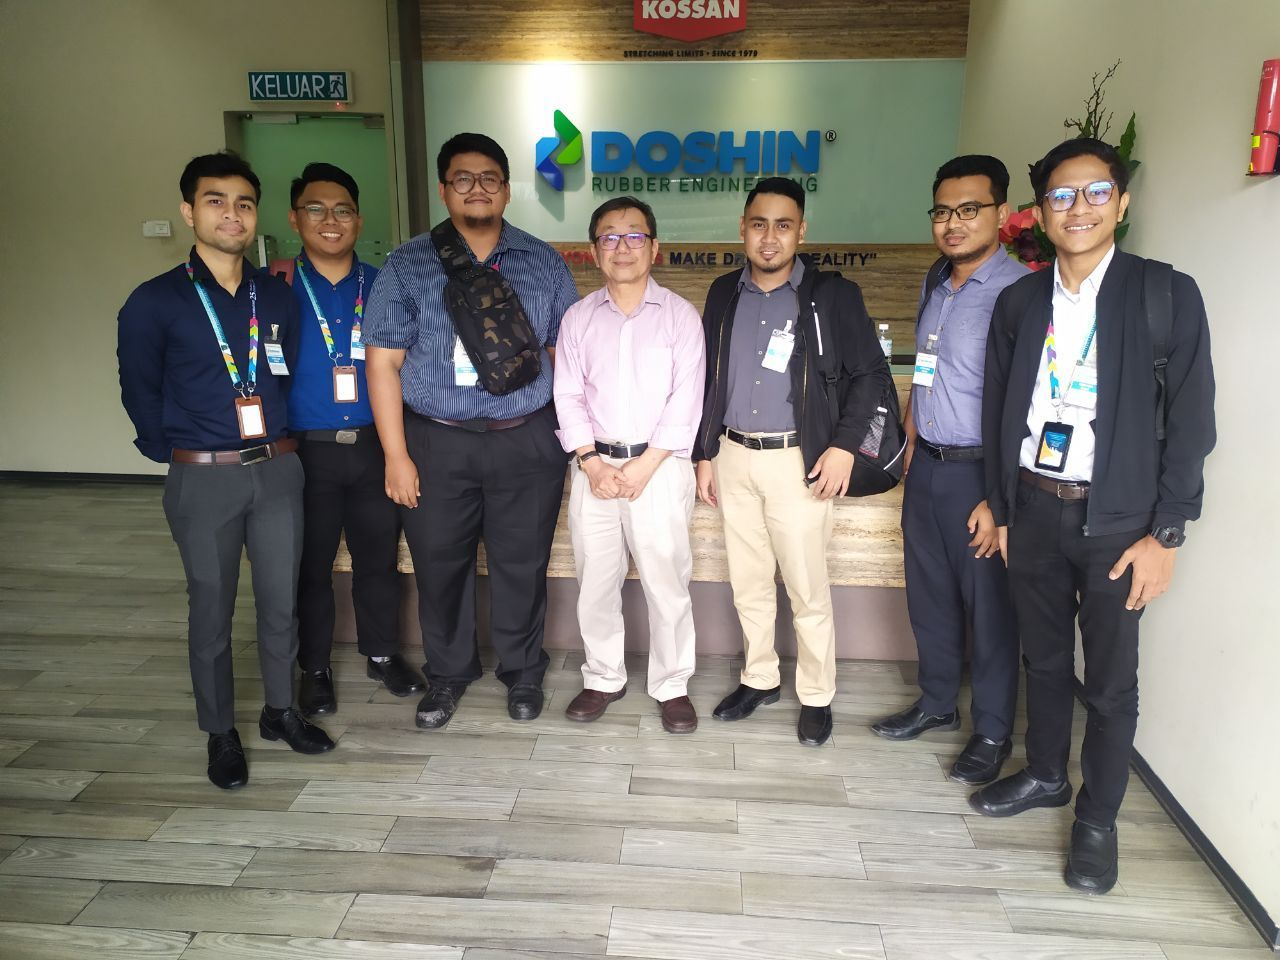 IAViC2019 Organising Committee Visit To Doshin Rubber Engineering